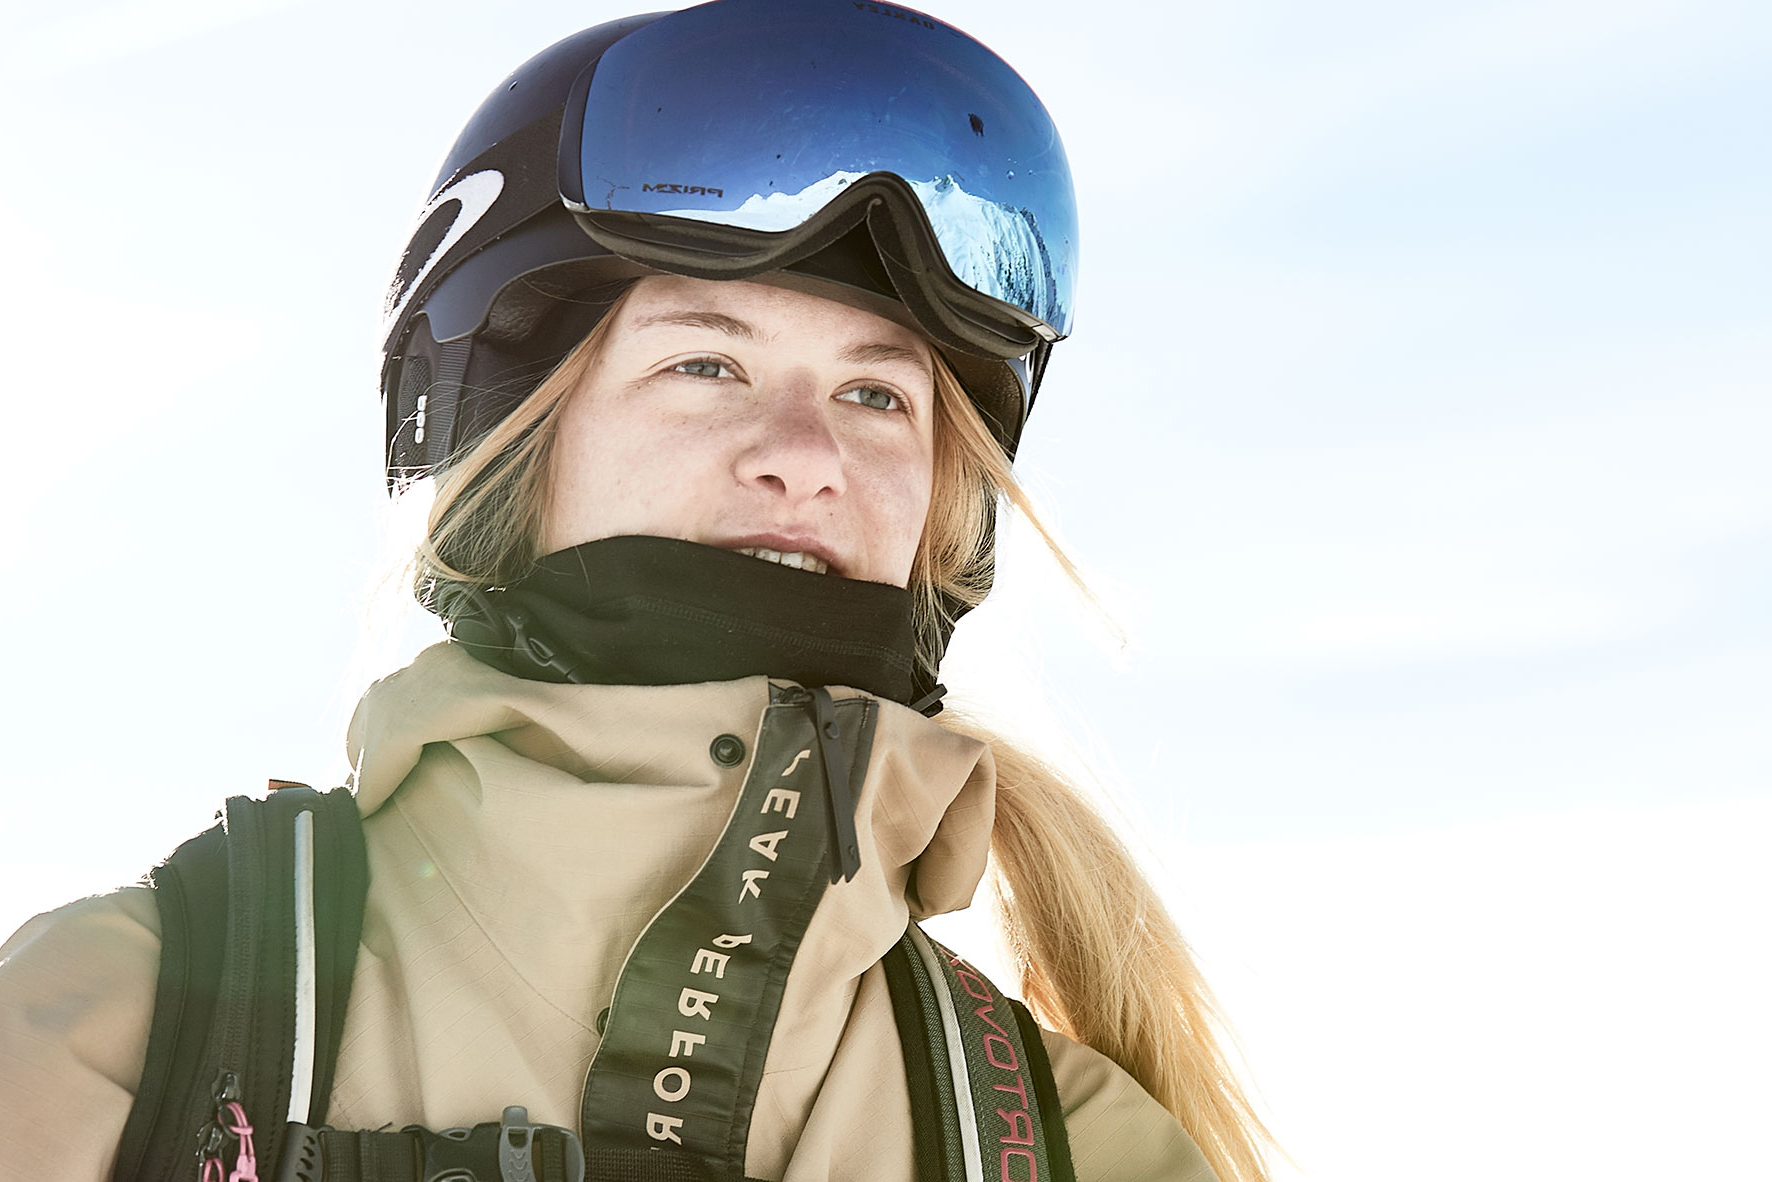 Portrait shot of a ski girl wearing a helmet and goggles while climbing the slopes on a ski tour.